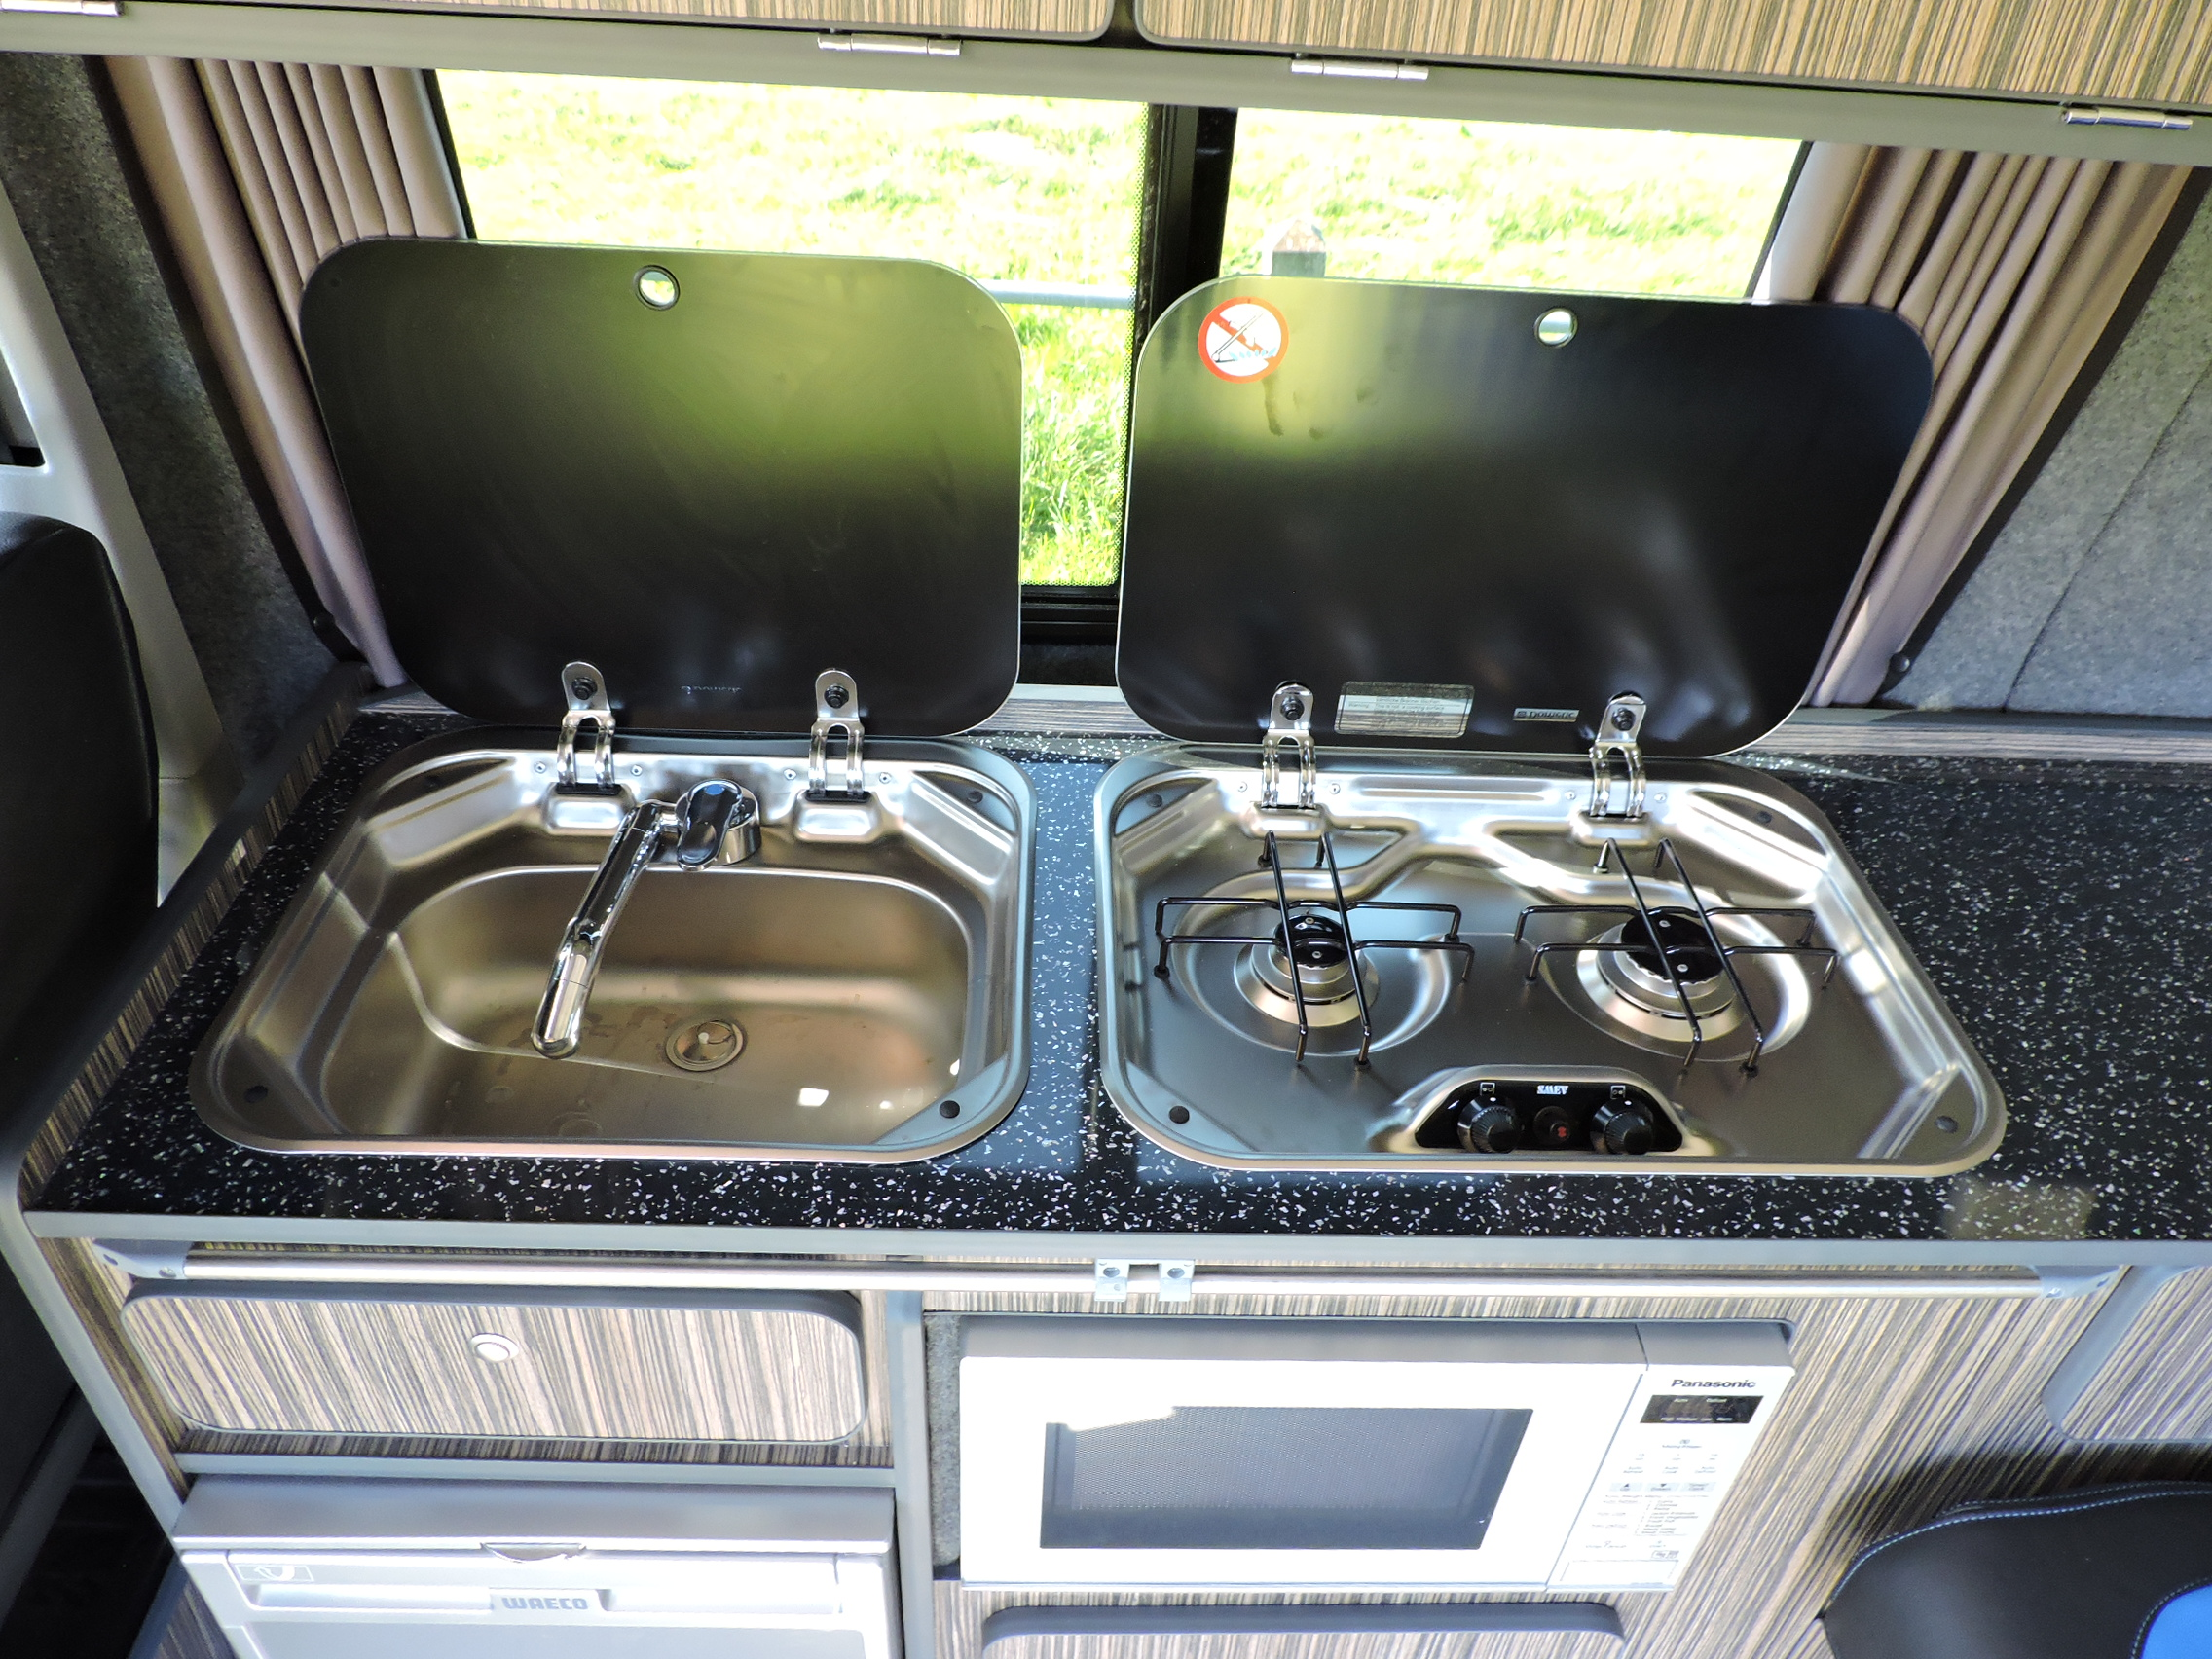 Cooking in VW campervan